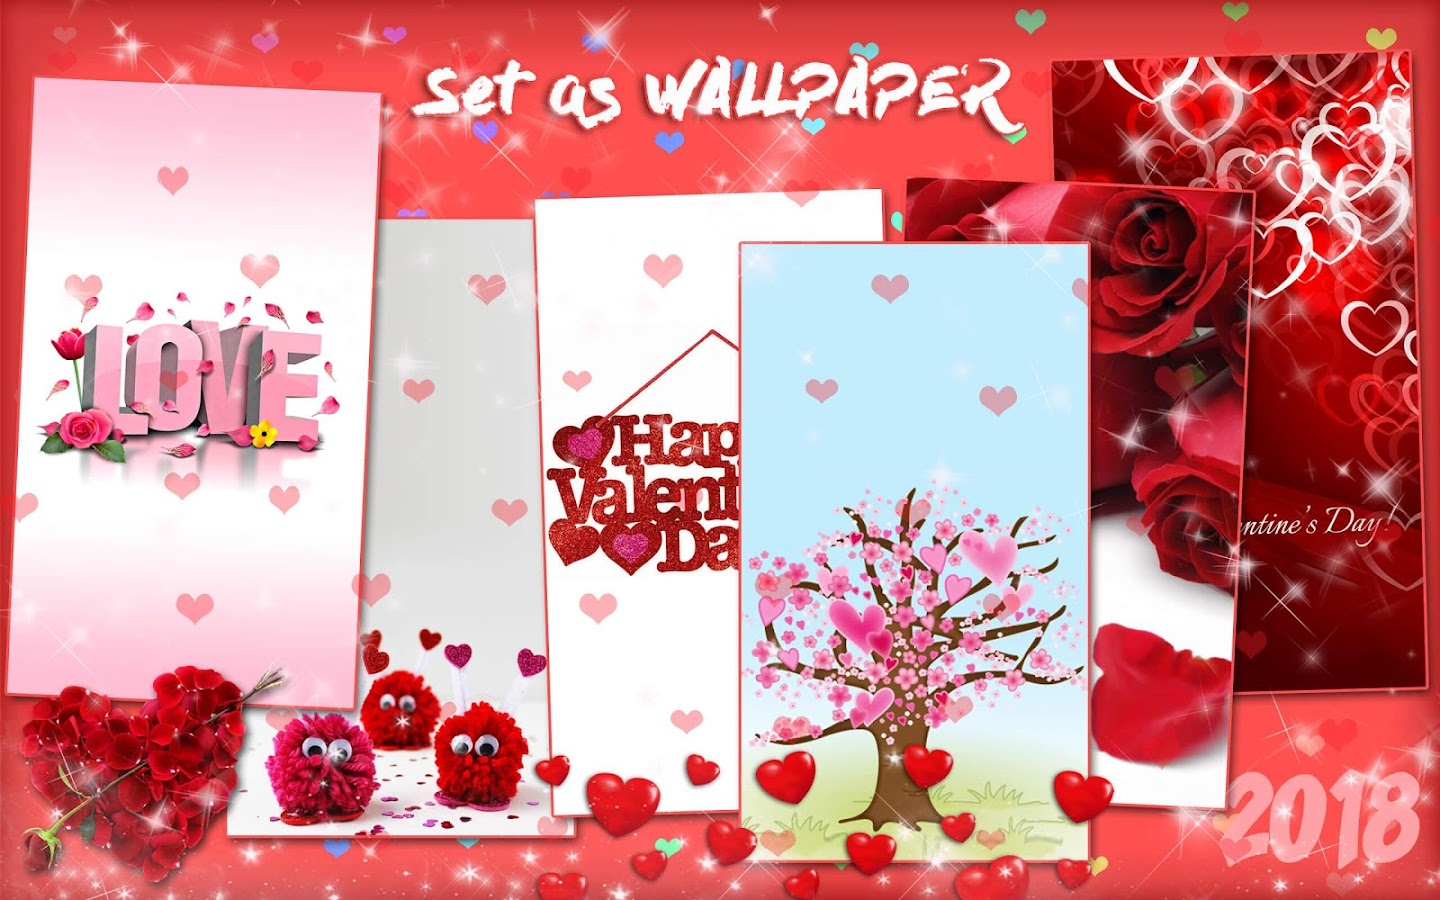 Valentines Day Live Wallpaper 💖 Love Background - Android ...